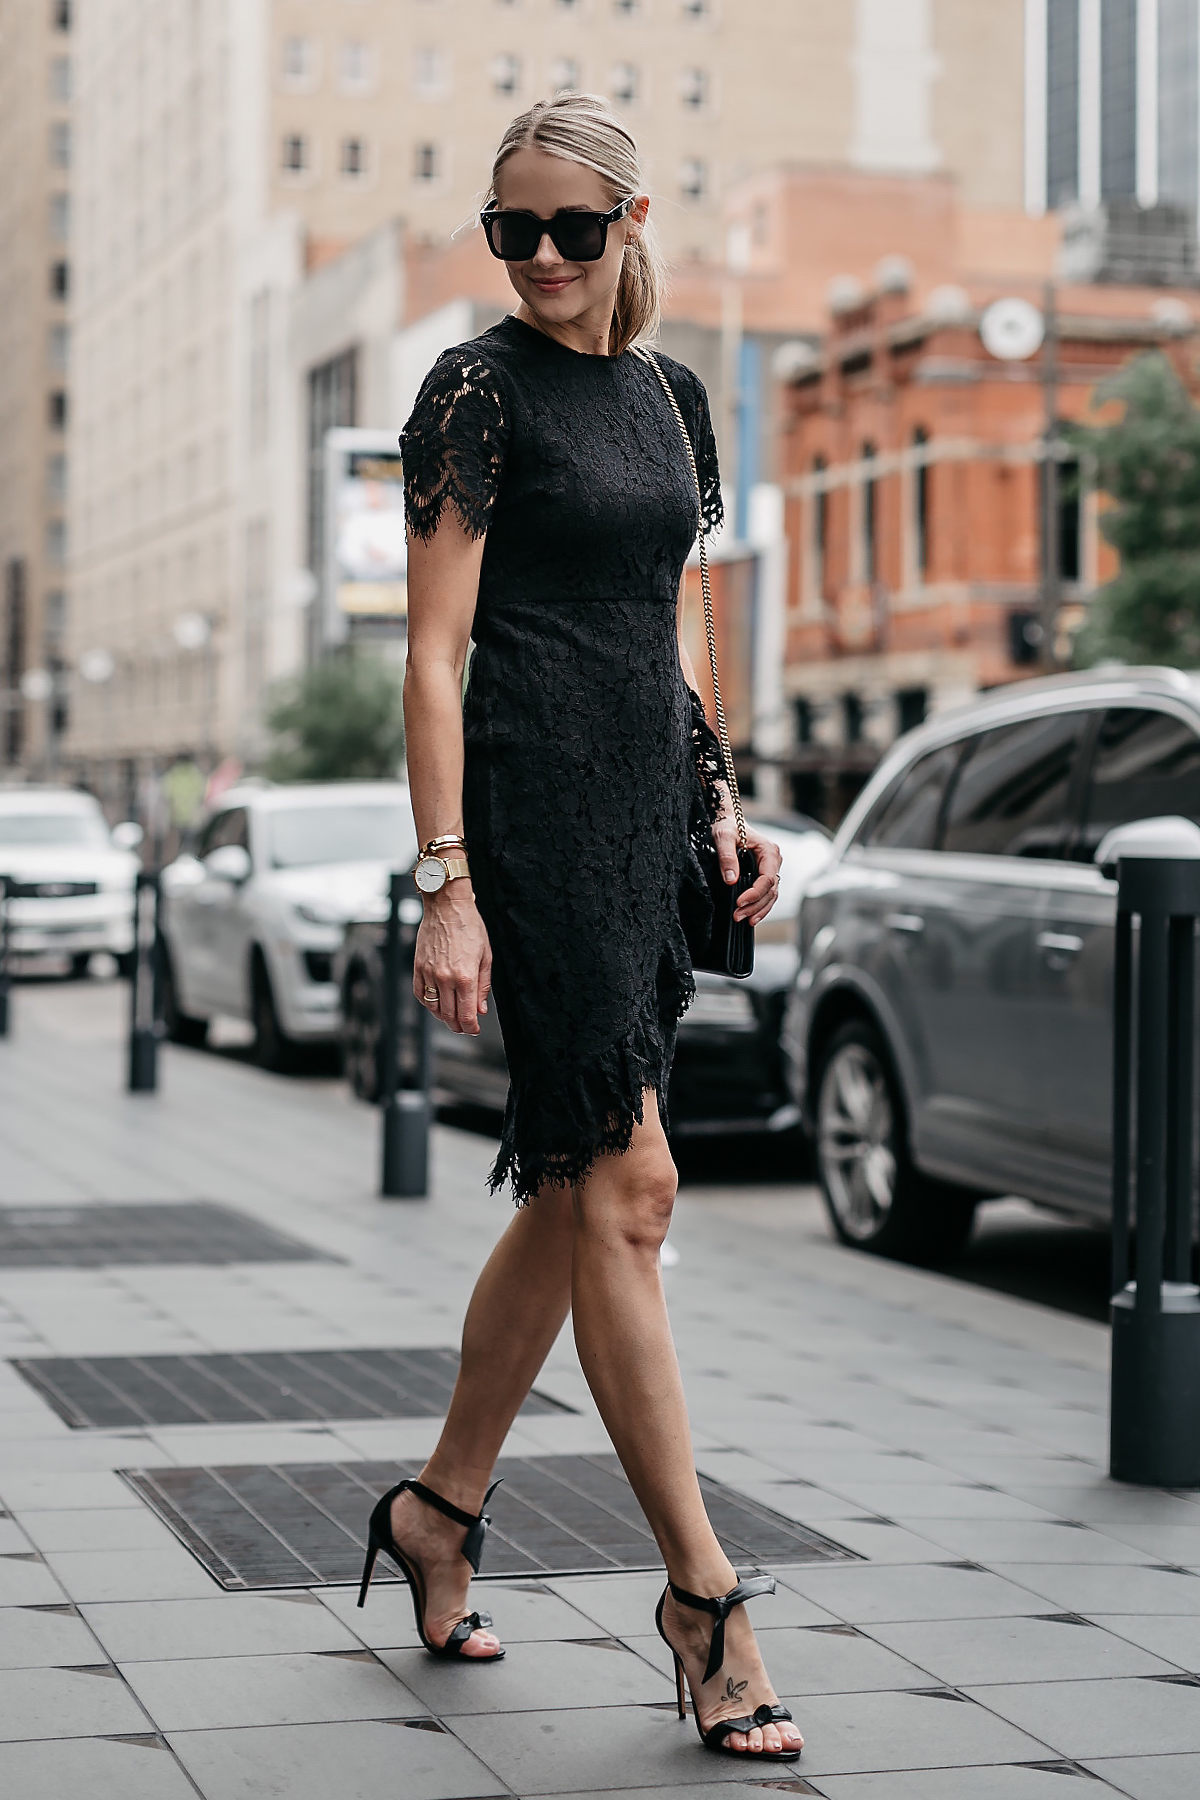 Blonde Woman Wearing Black Lace Dress Black Tie Bow Heeled Sandals Fashion Jackson Dallas Blogger Fashion Blogger Street Style